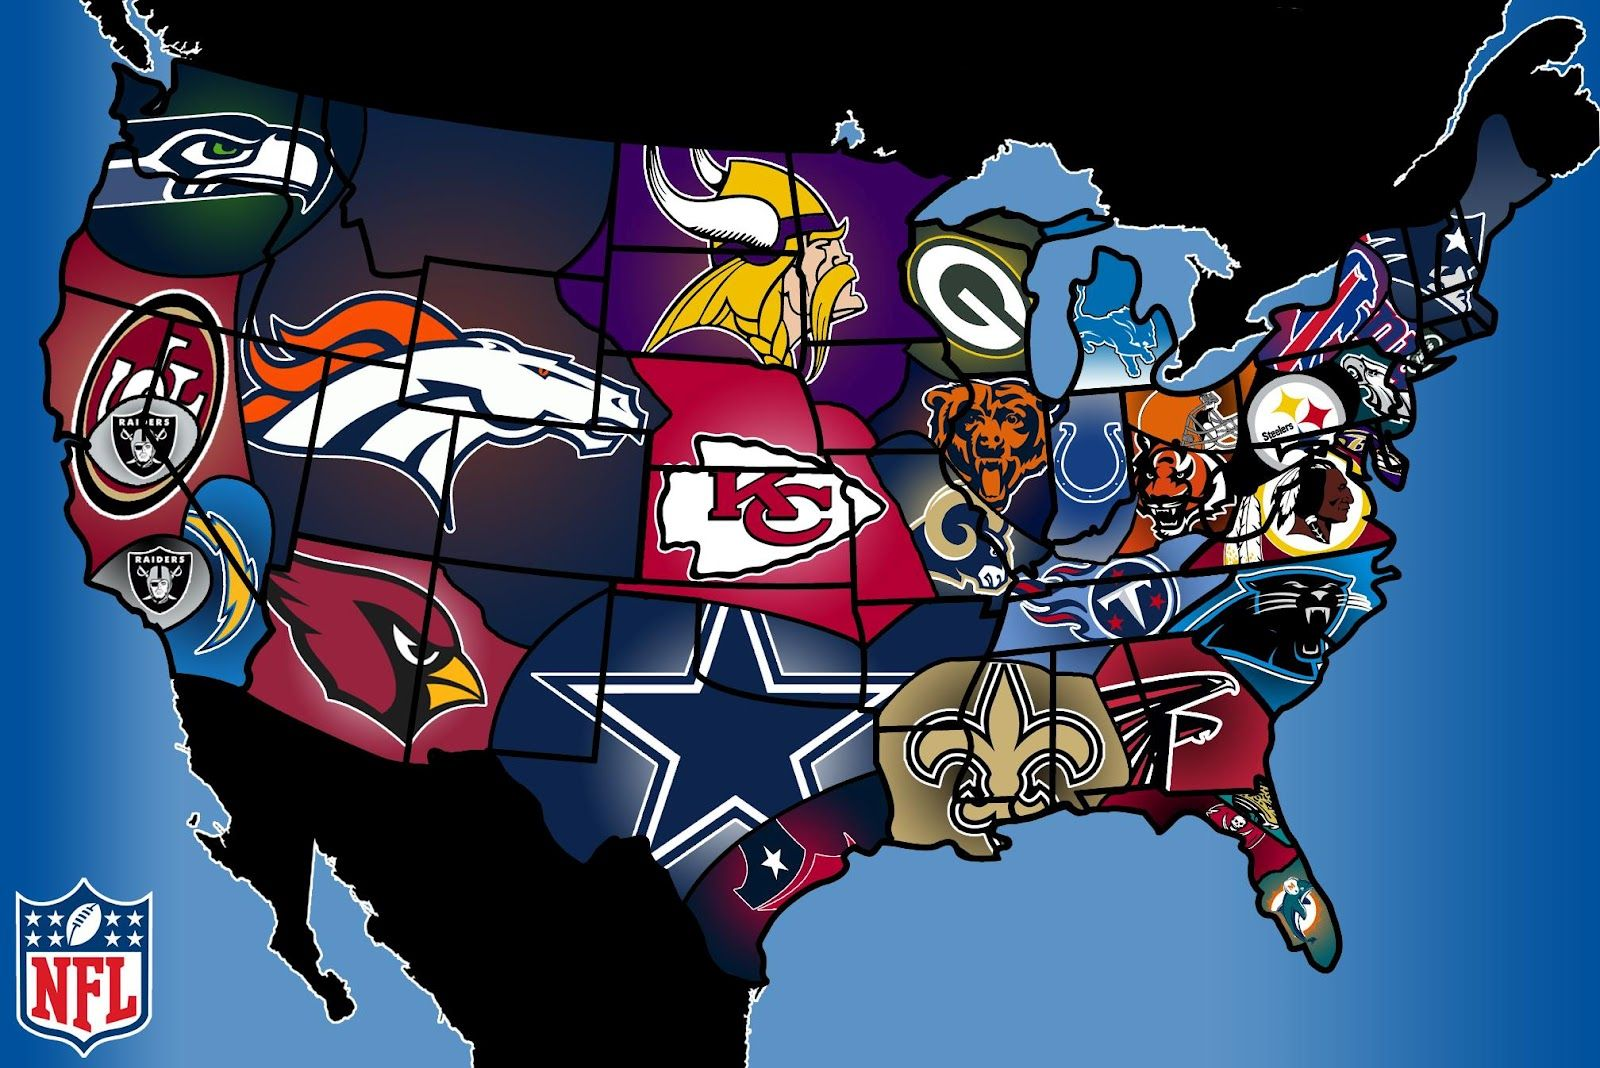 Google Image Result For Http 2 Bp Blogspot Com Vswwn5dccdw Ublf Lxfv7i Aaaaaaaajko U Wcow 7emm S1600 Nfl Fan Map Jpeg Nfl Season Nfl Fans Nfl Teams